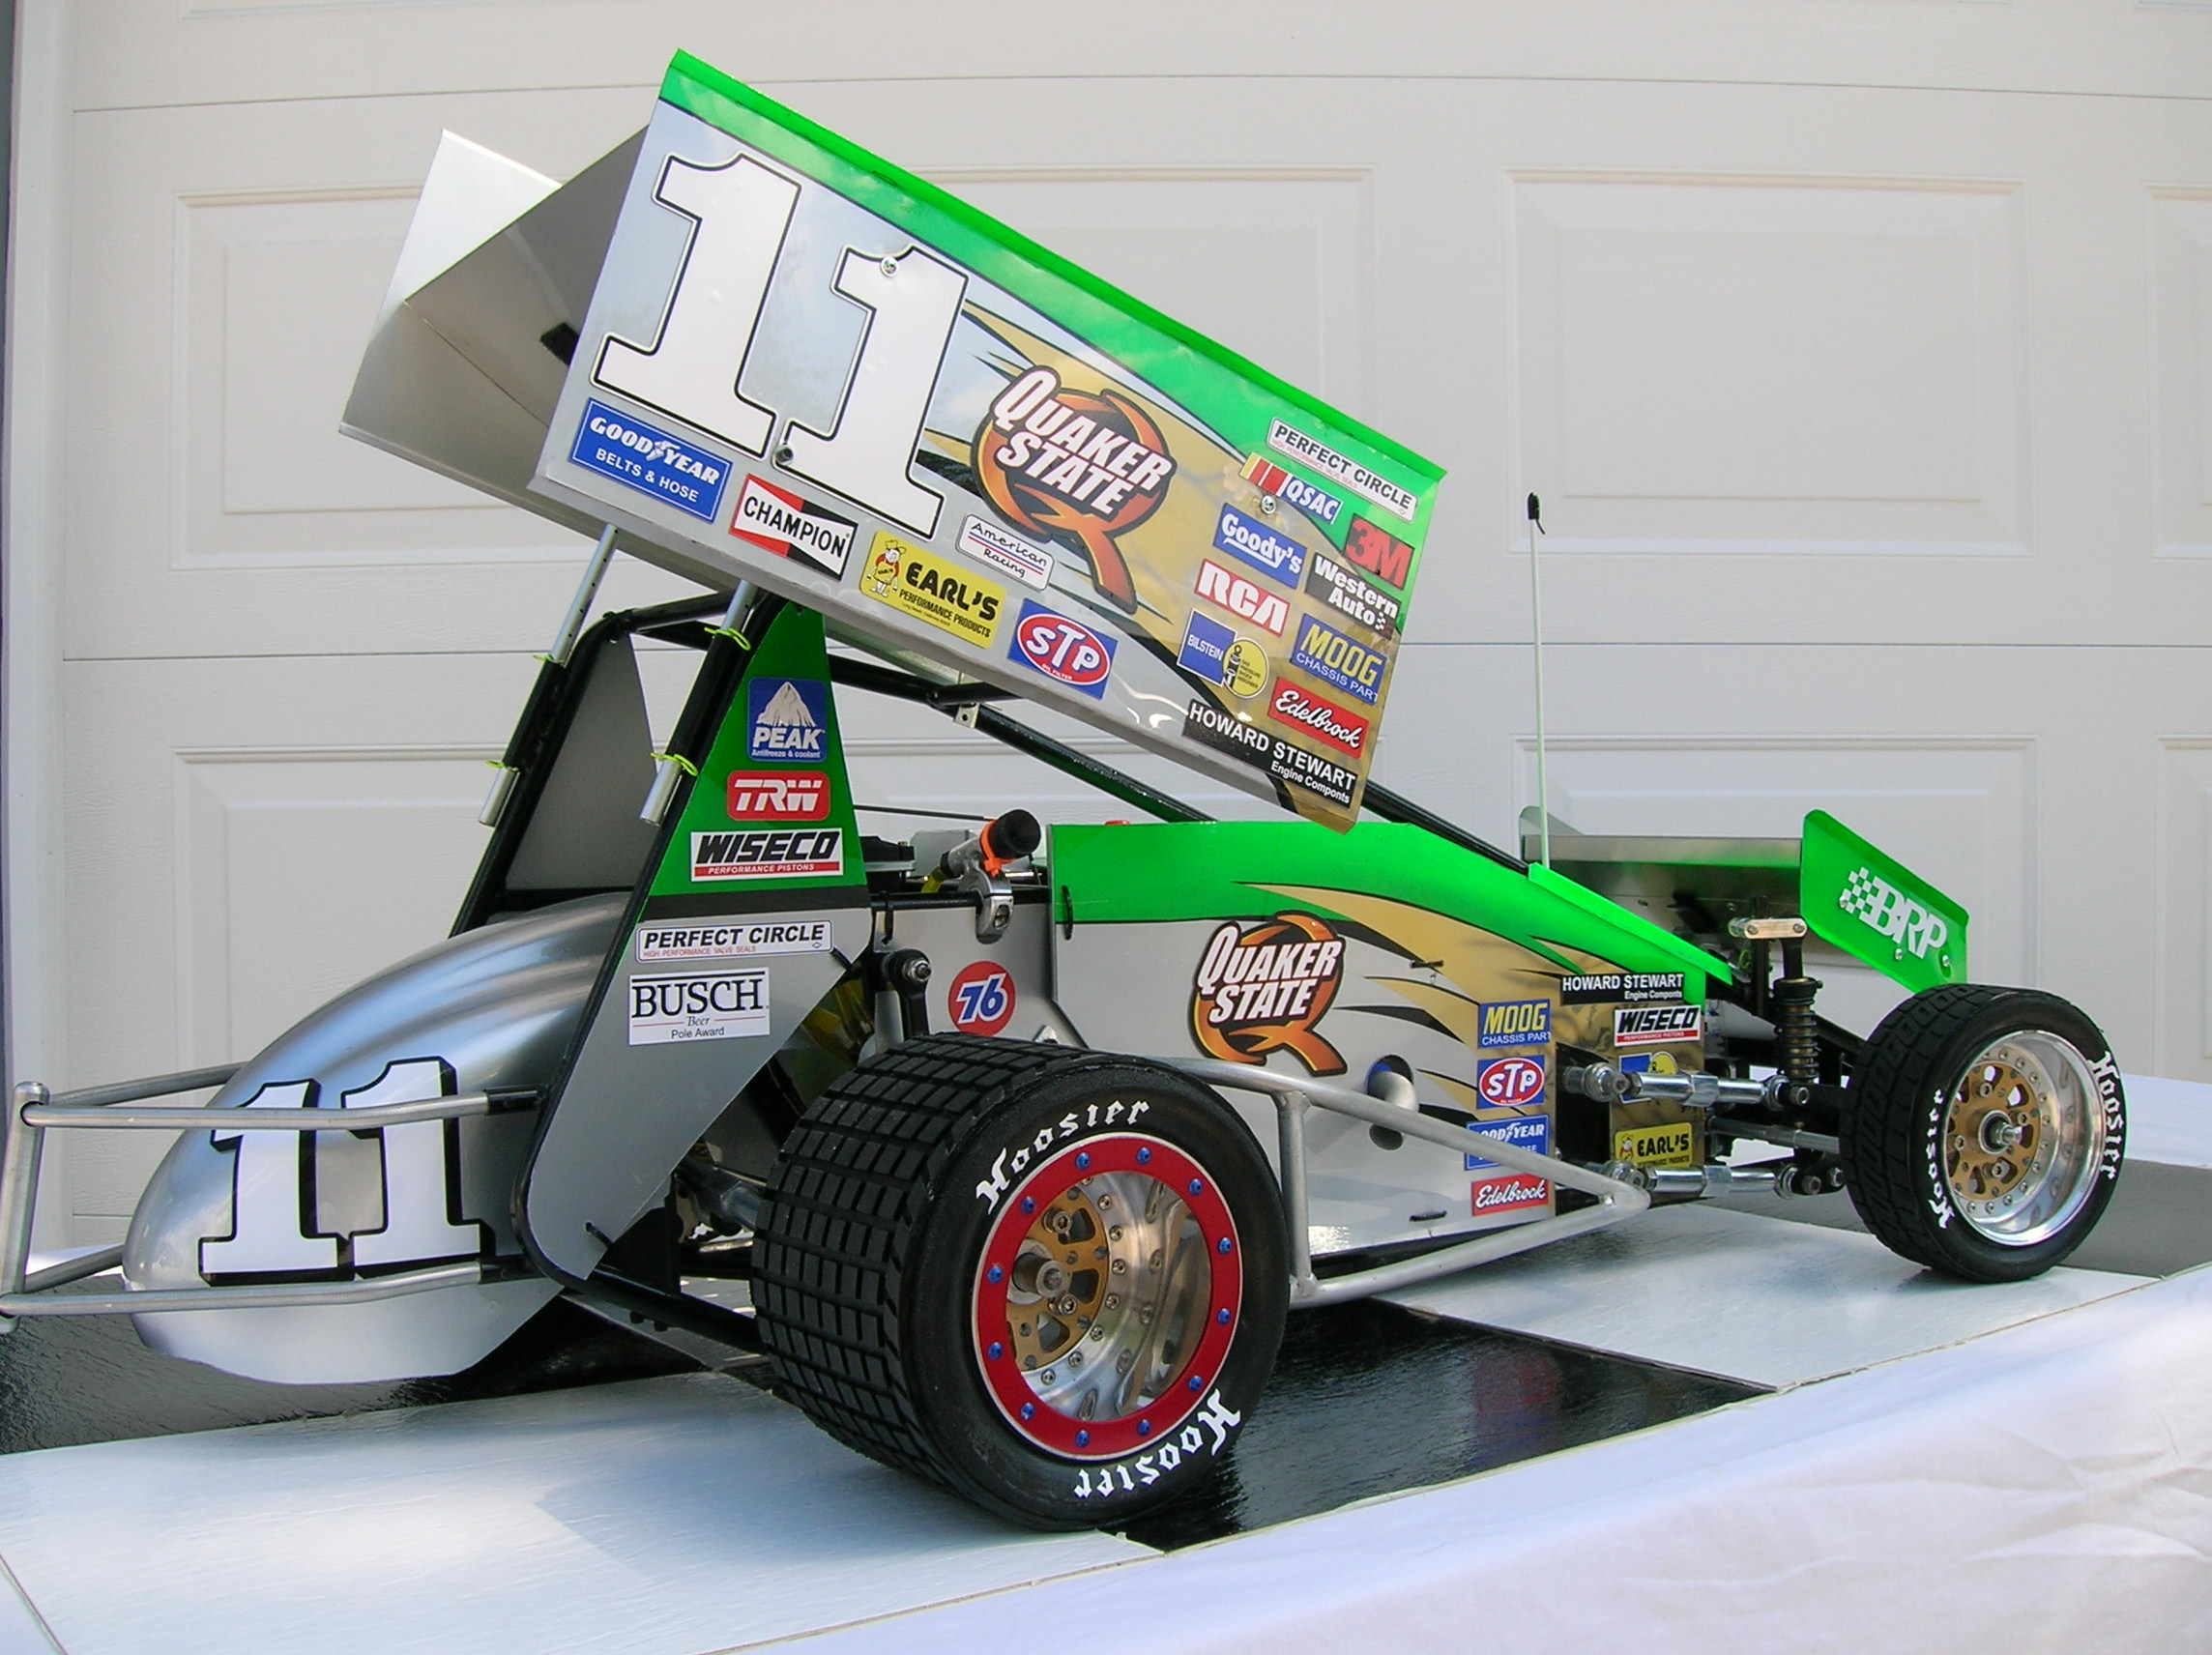 0802rc Independent Rear Suspension in addition Monster Drink Top Energy Drink Good further 243529 besides Budweiser Joins Tribute To Dale Earnhardt also pro1z. on rc sprint cars 4 sale